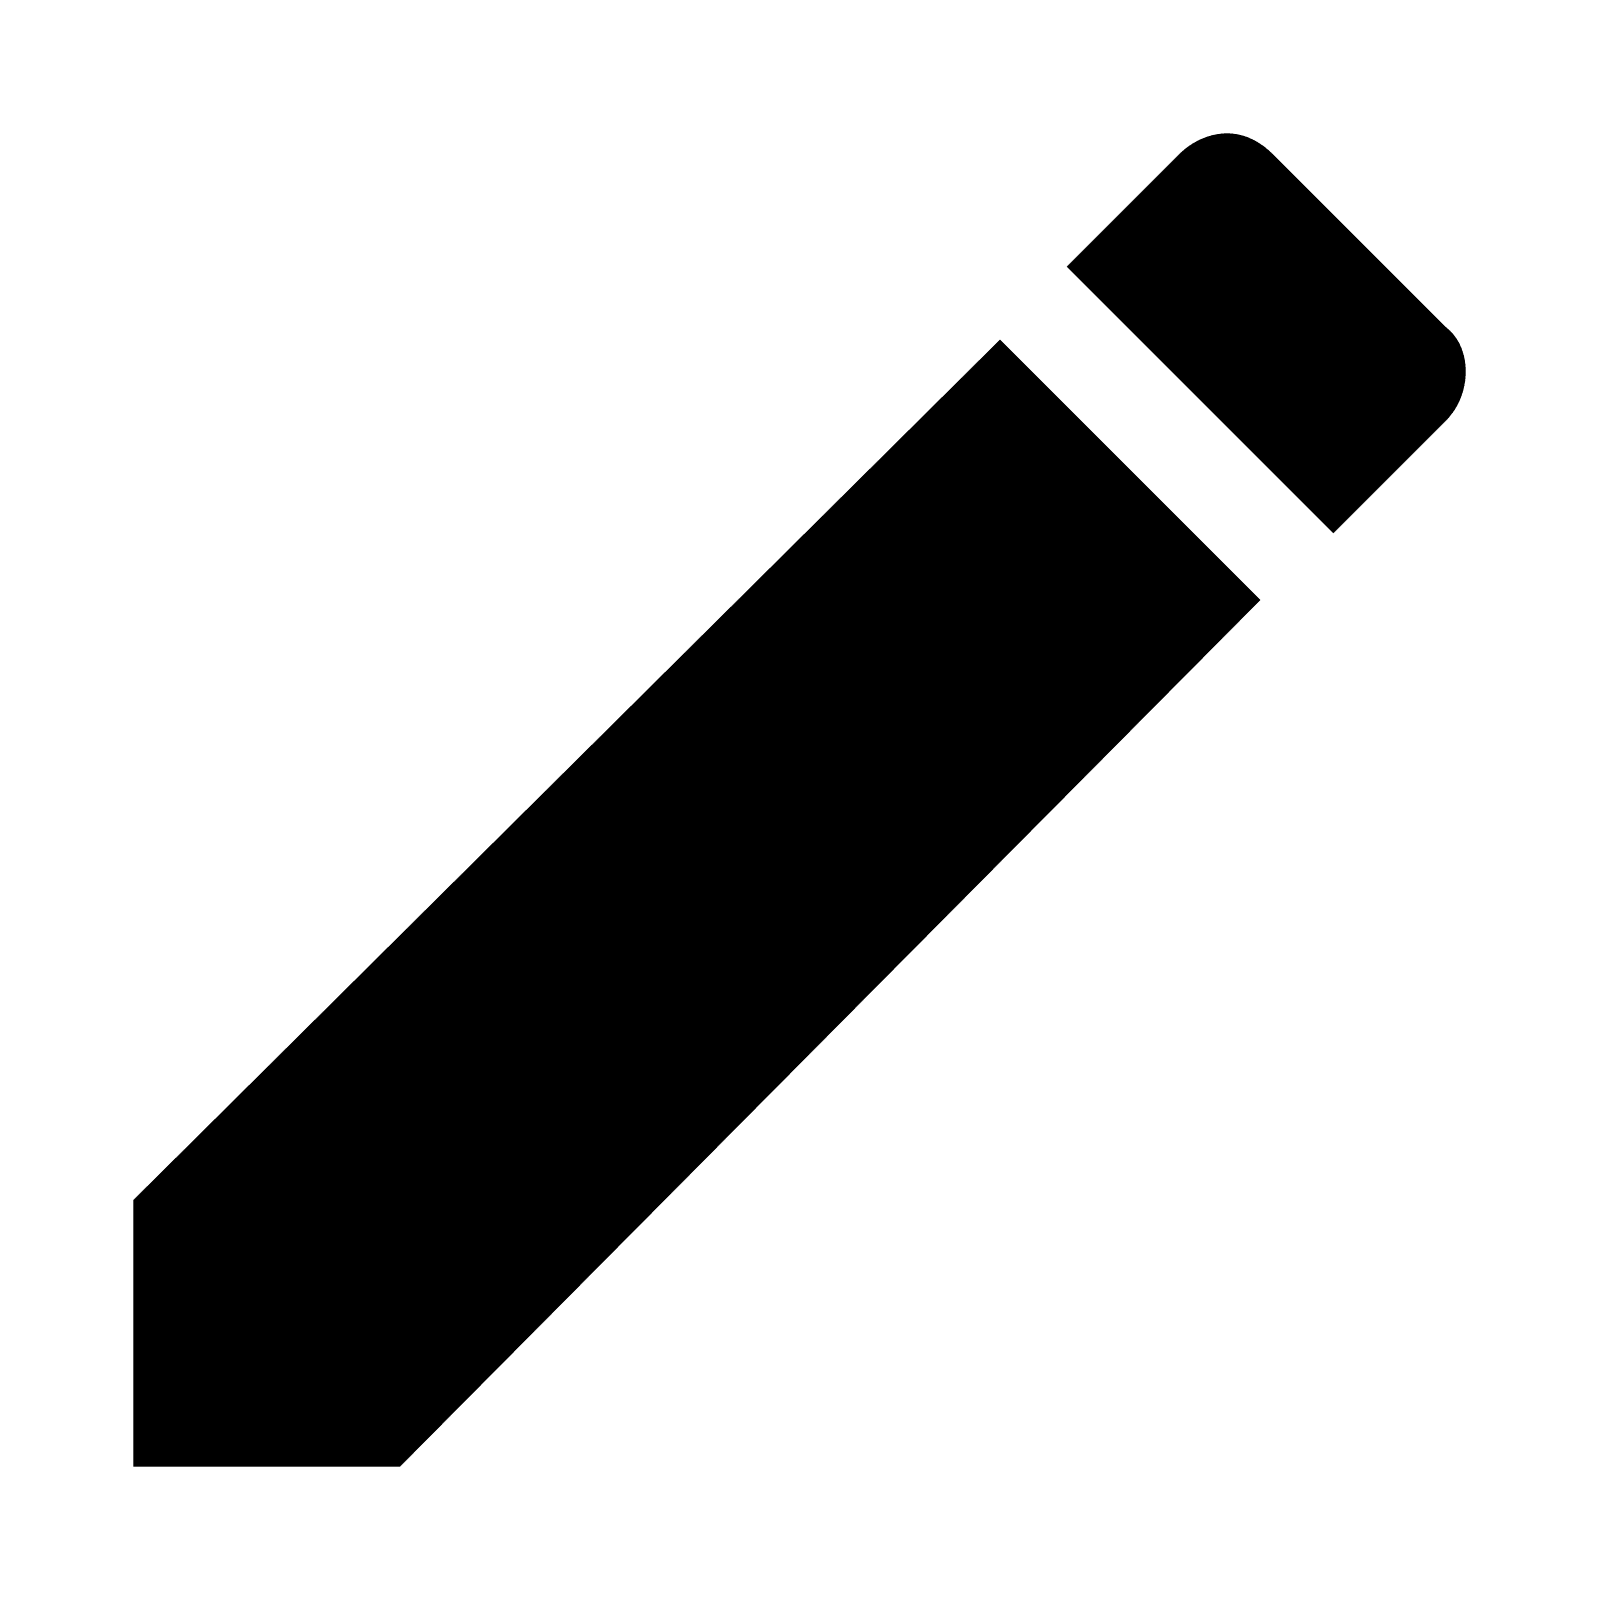 Tip Of Pencil PNG - 57088